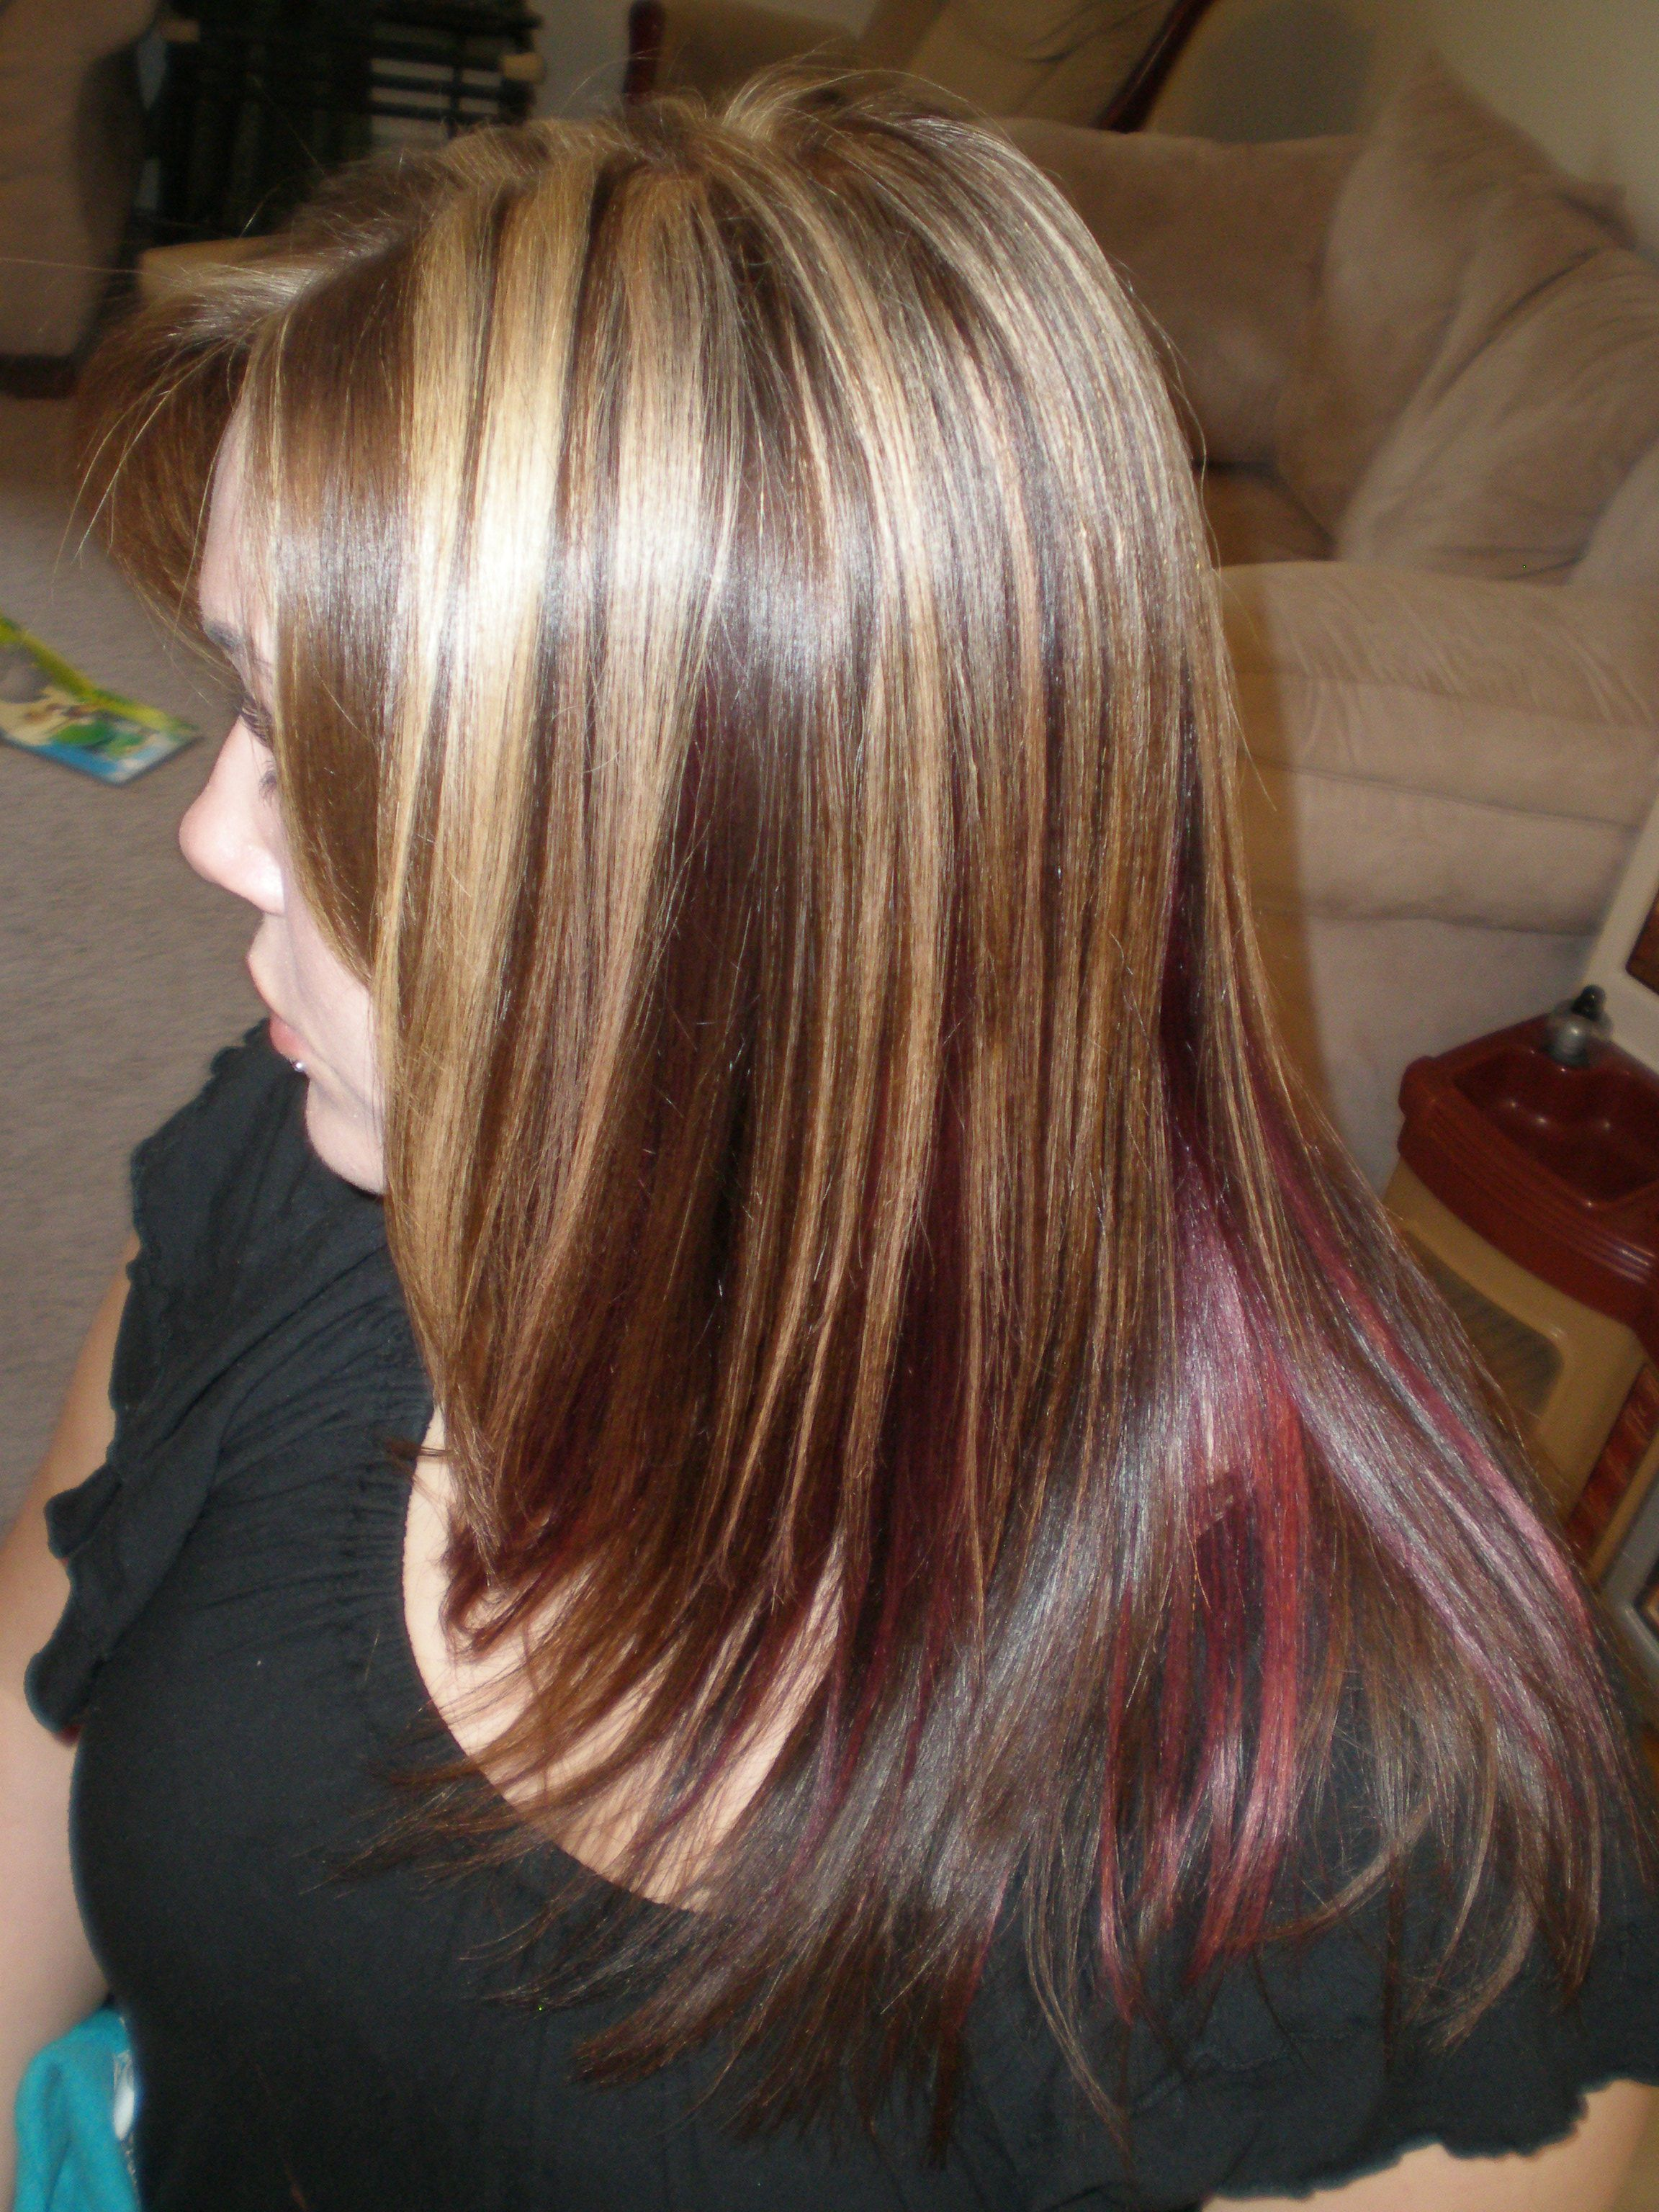 Pin On Tpo Cuts Or Color For Me